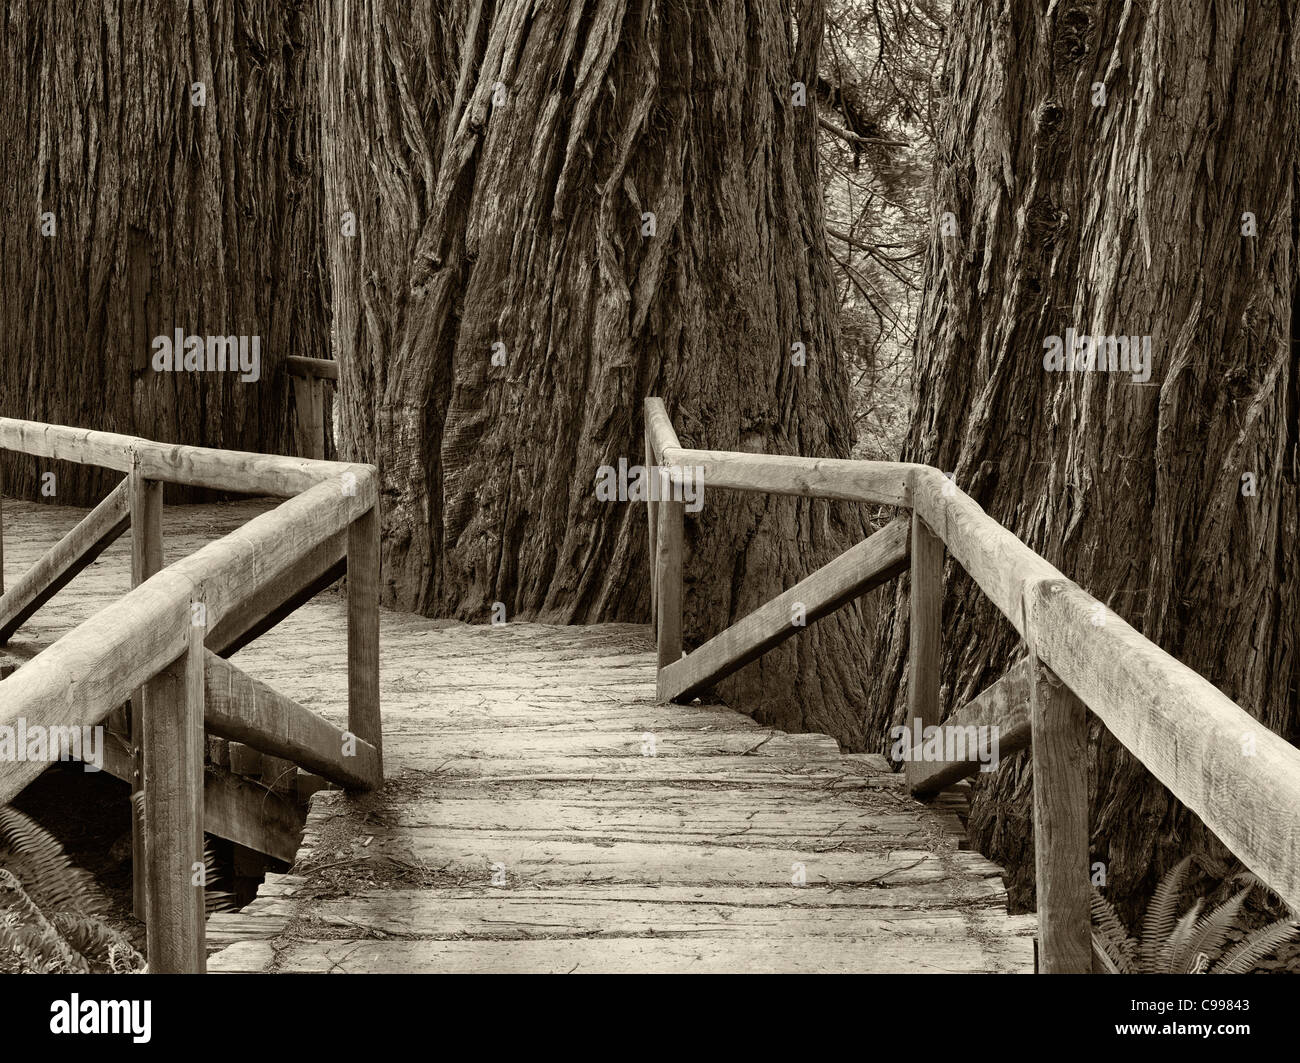 Bridge over creek in Redwood National and State Parks, California Stock Photo